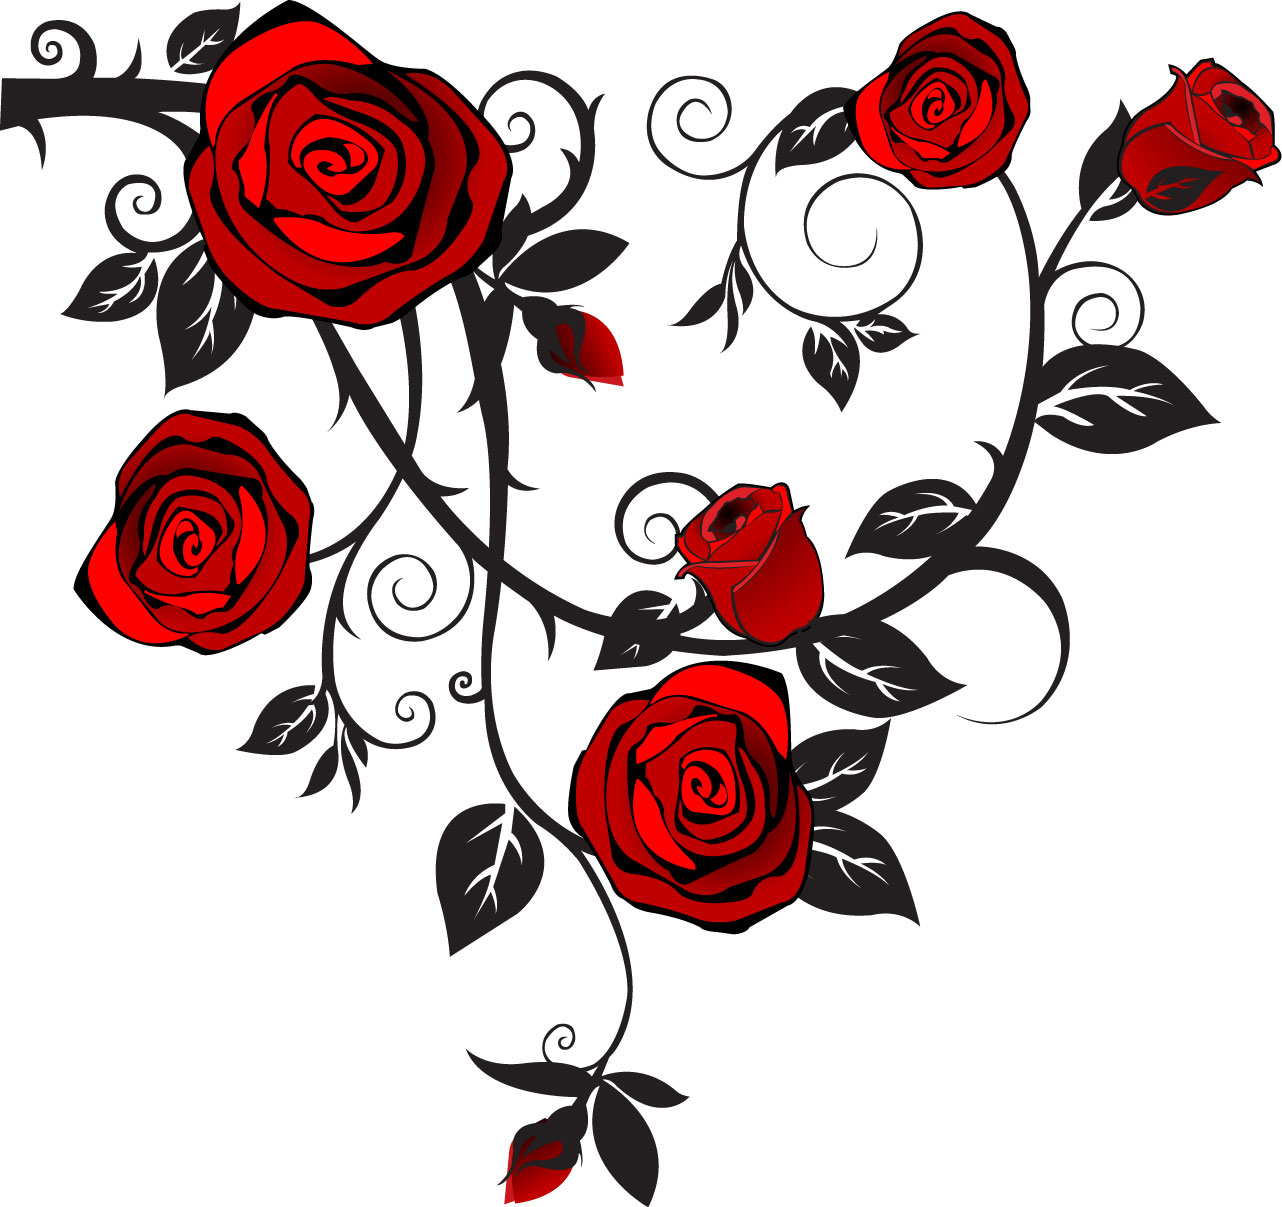 Rose vector clipart graphic free download Free Vector Roses, Download Free Clip Art, Free Clip Art on ... graphic free download